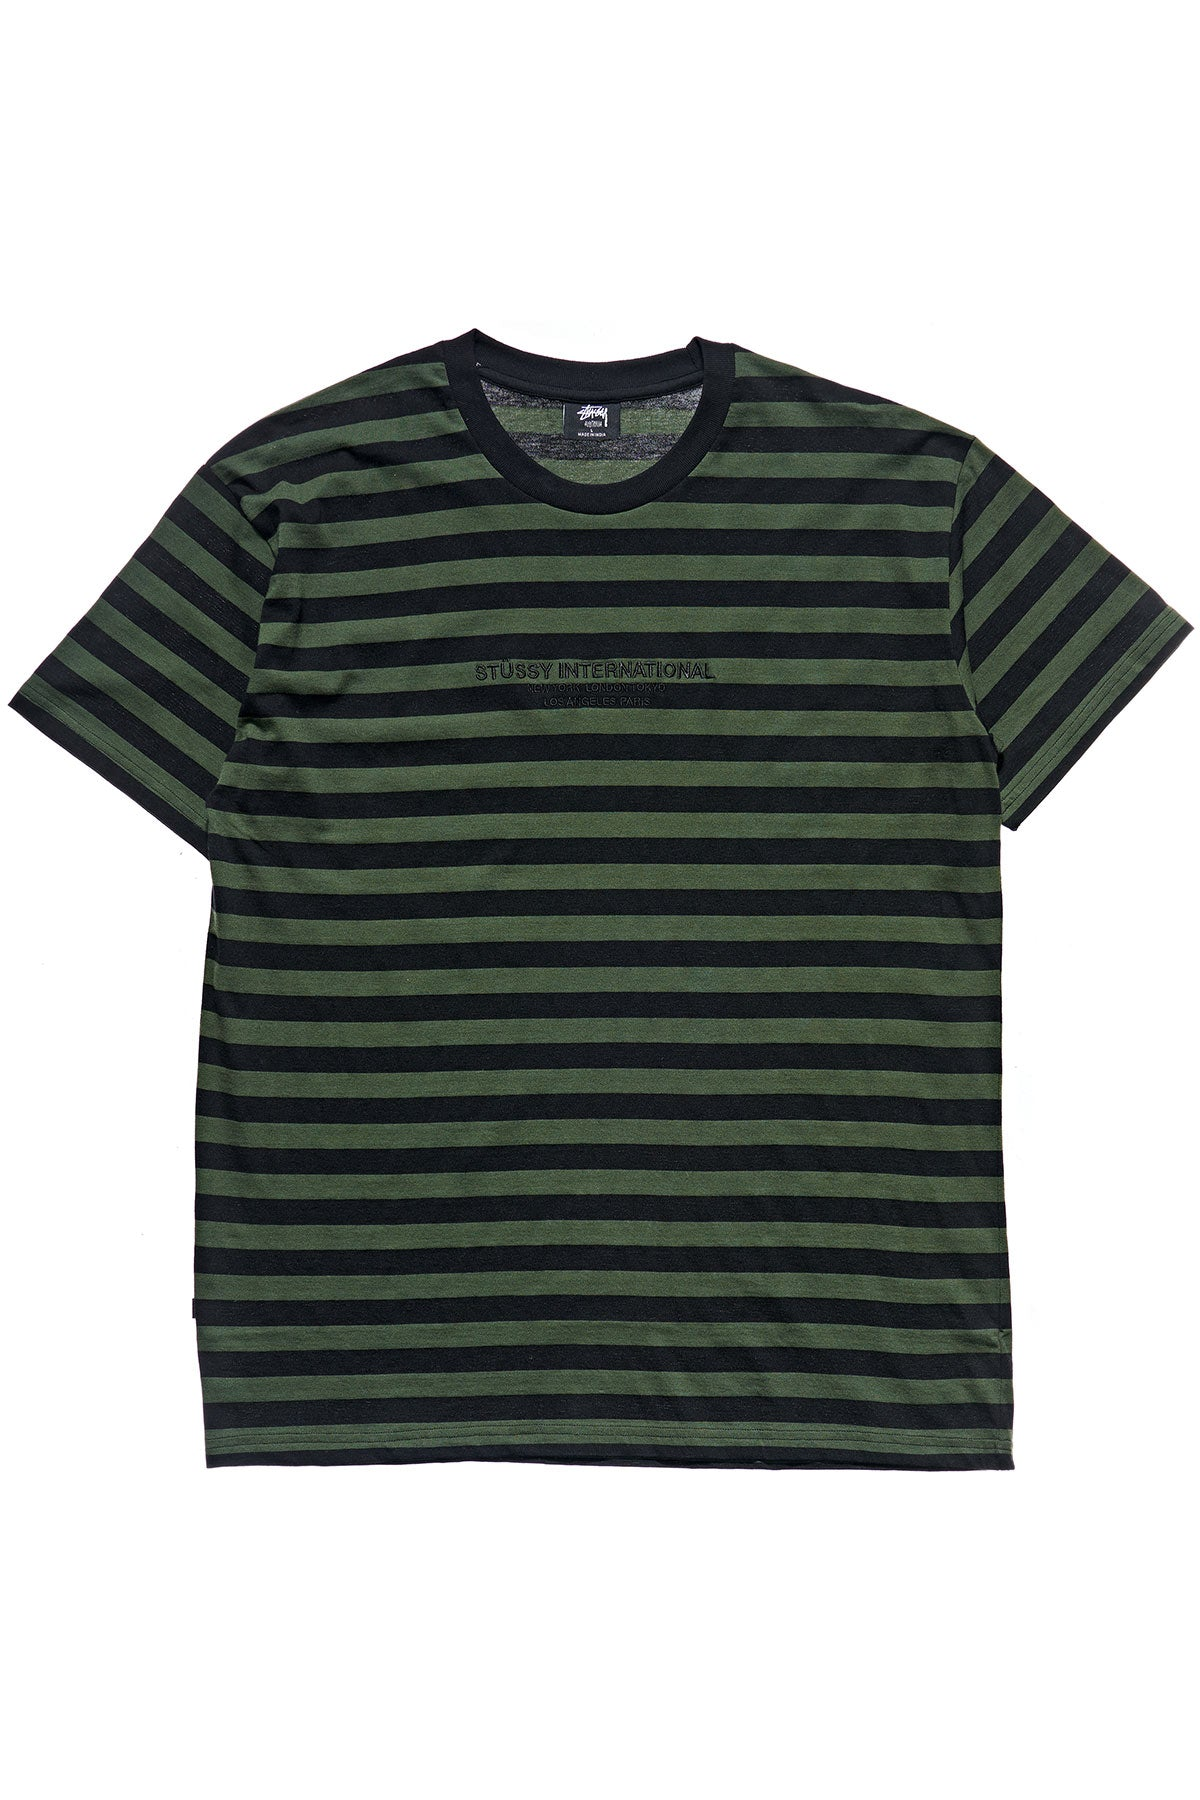 International Stripe SS Tee